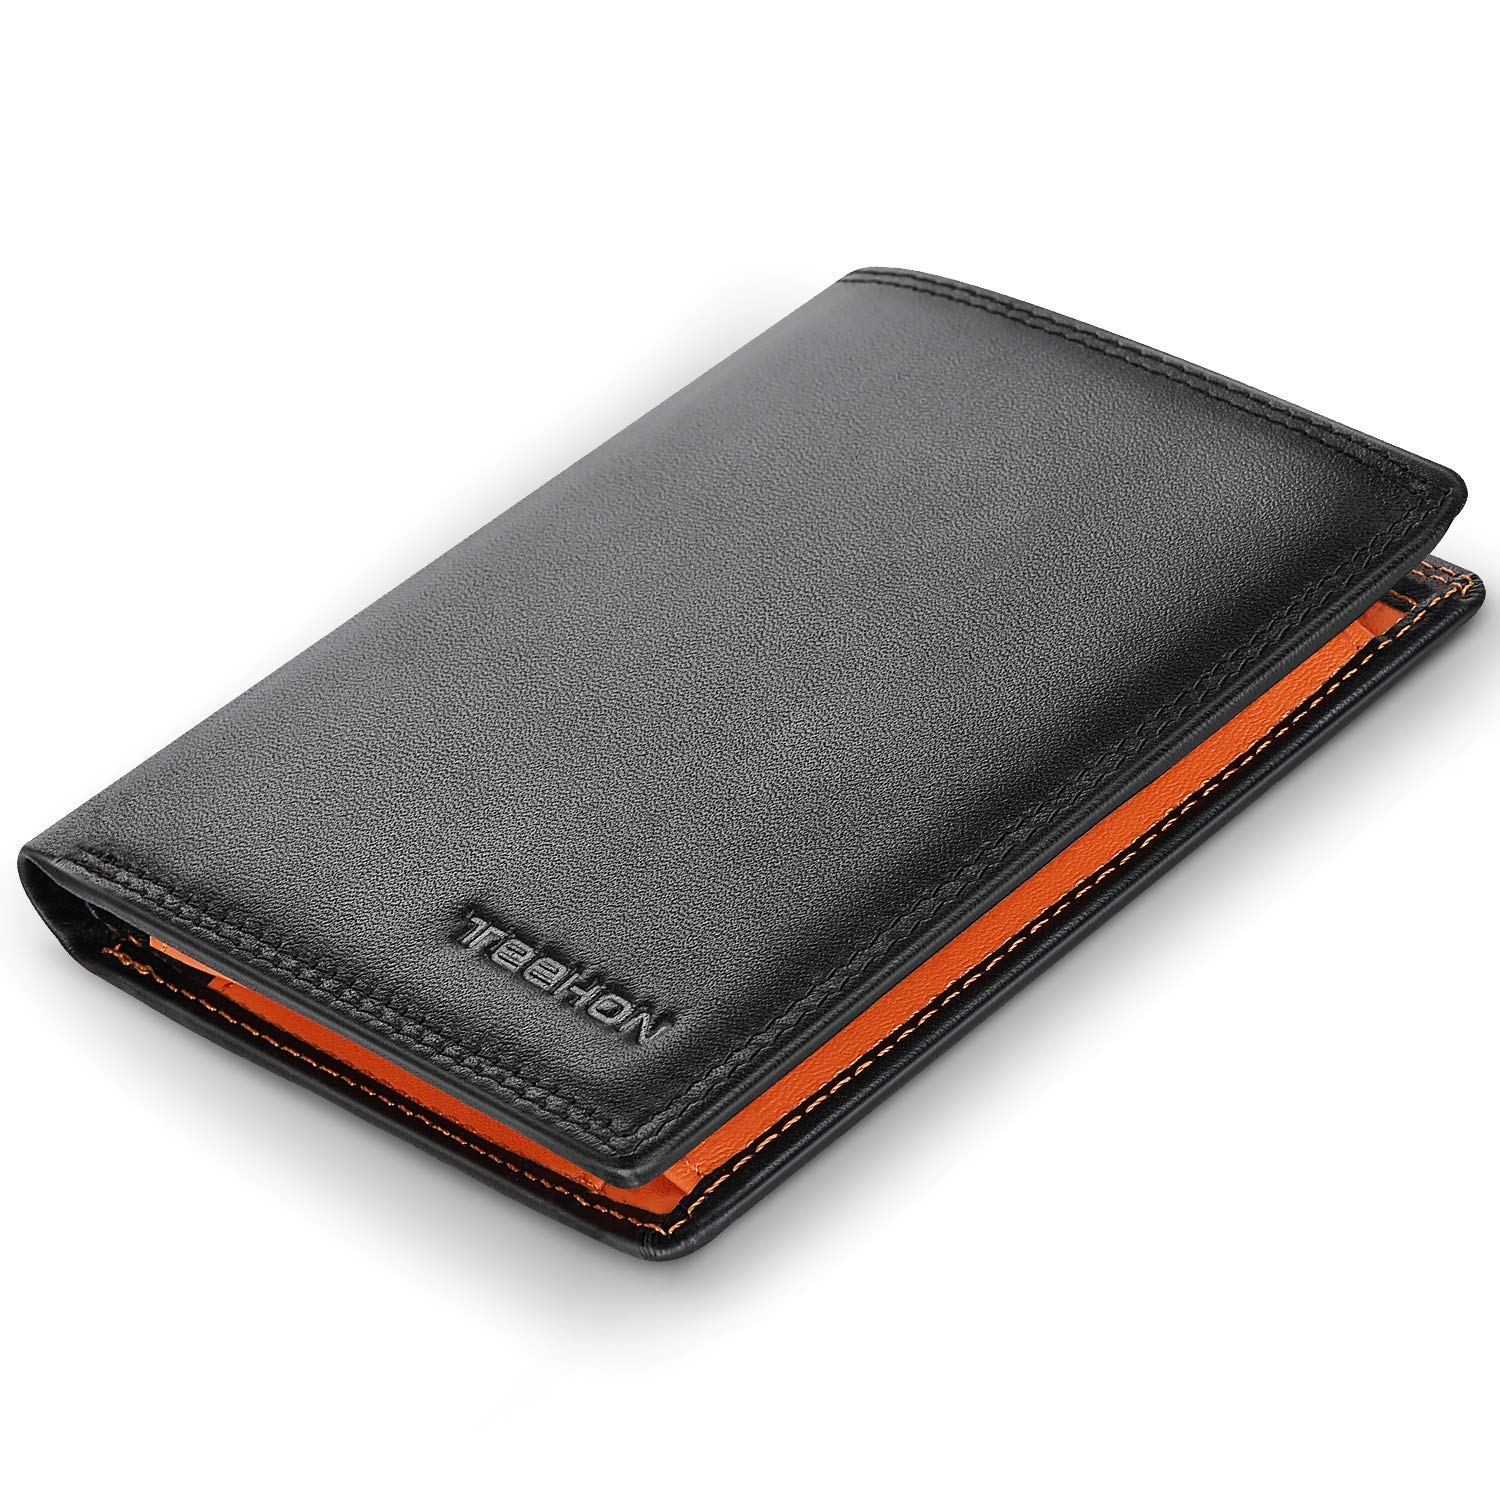 Wallets Mens RFID Blocking Genuine Leather with 12 Credit Card Holders, Coin Pocket, 2 Banknote Compartments, ID Window, Bifold Vertical Wallet for Men with Gift Box- Black and Orange